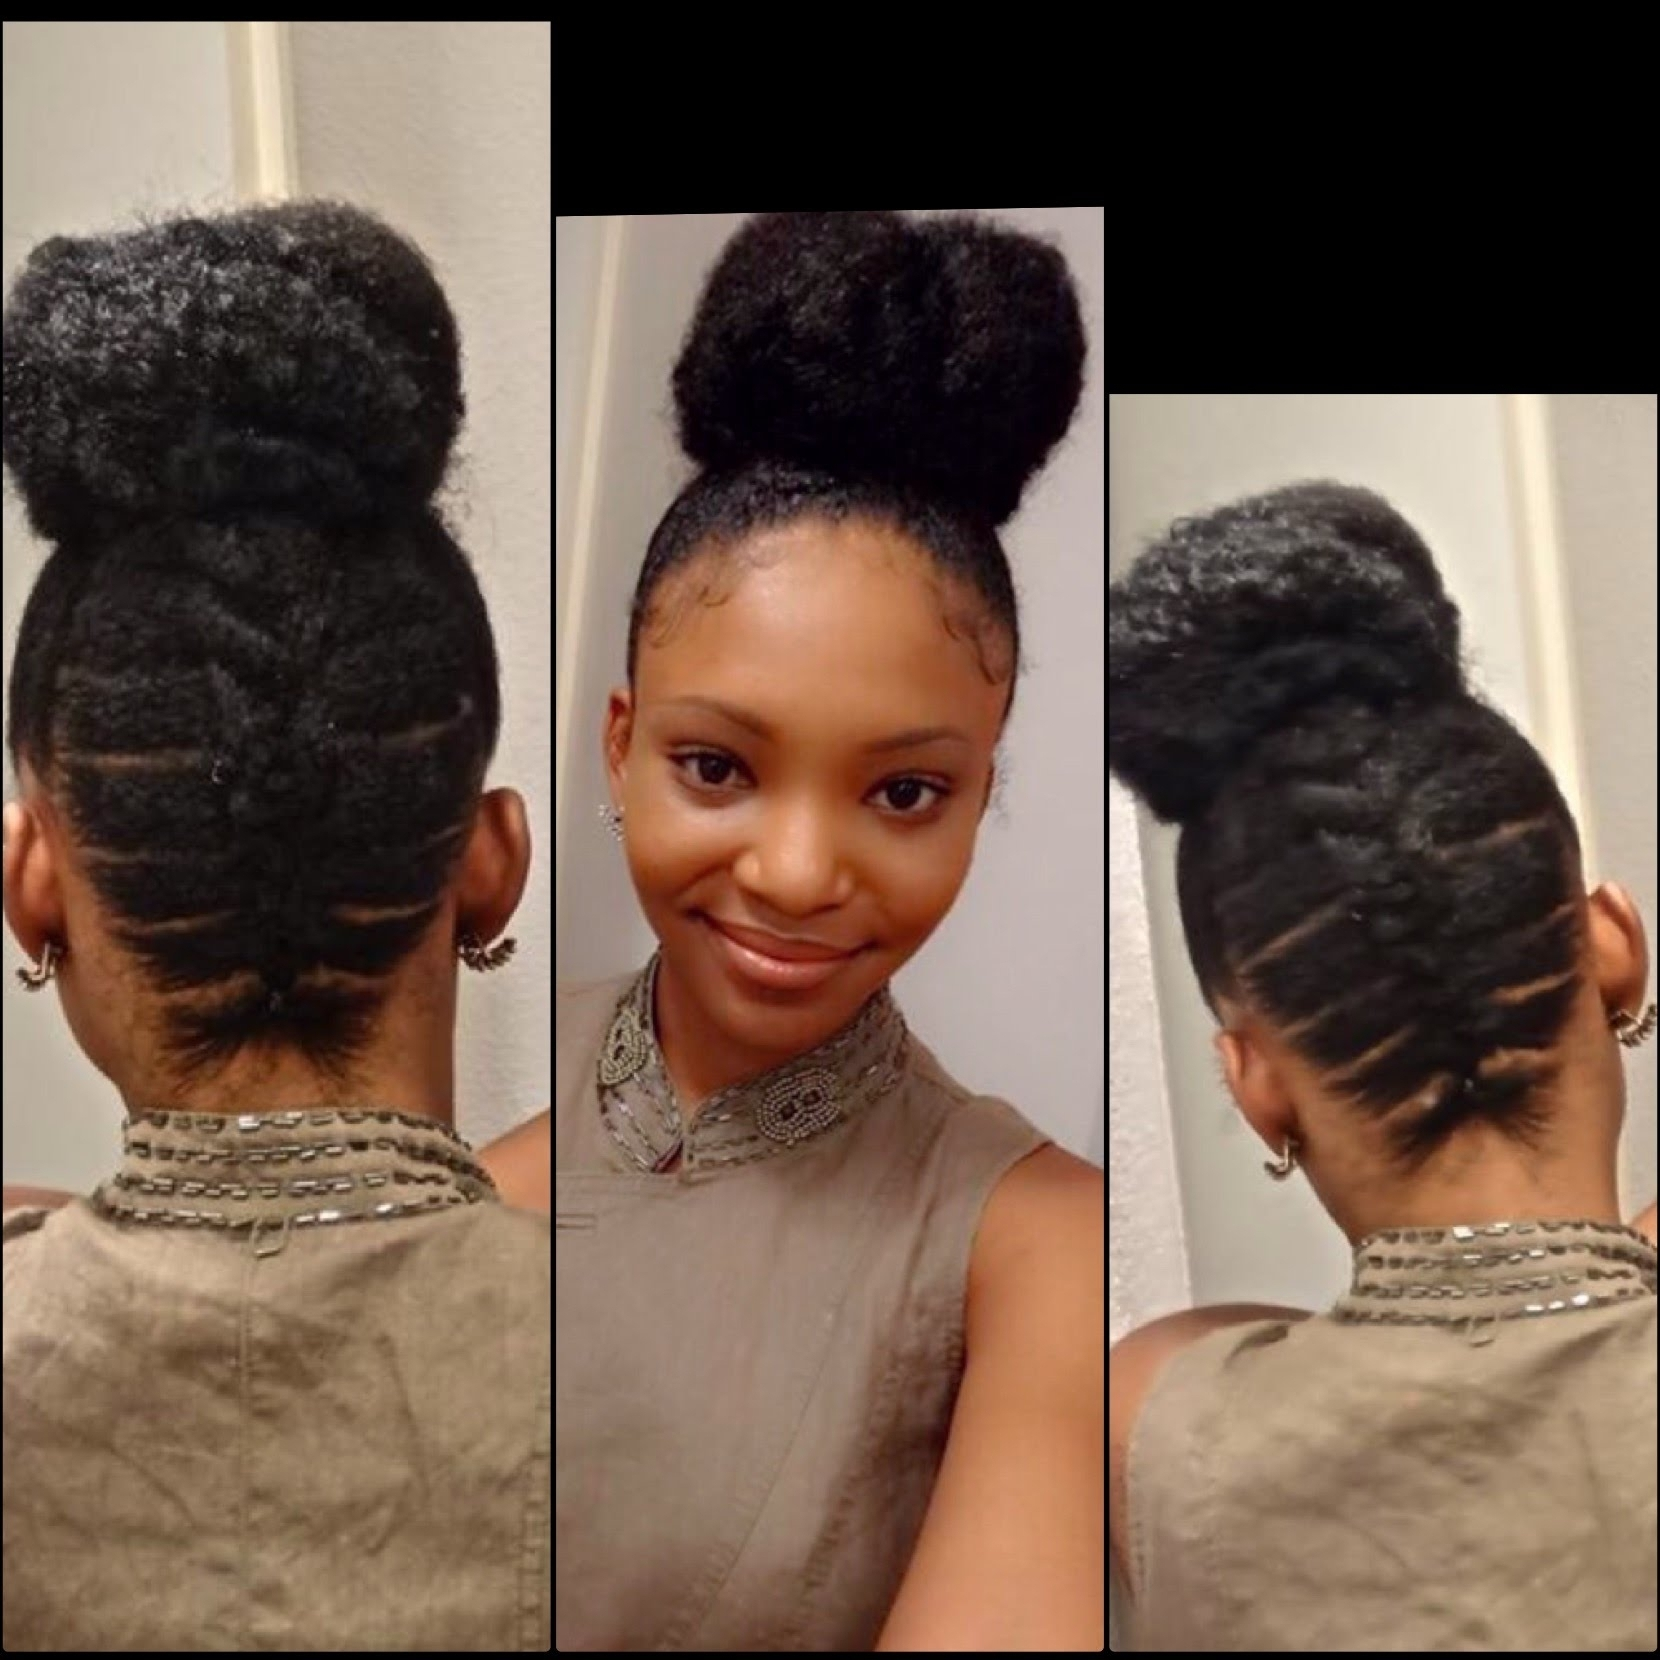 Cornrow Updo Hairstyles Elastic Cornrows Youtube Women Collection Of Regarding Cornrow Updo Hairstyles (View 7 of 15)